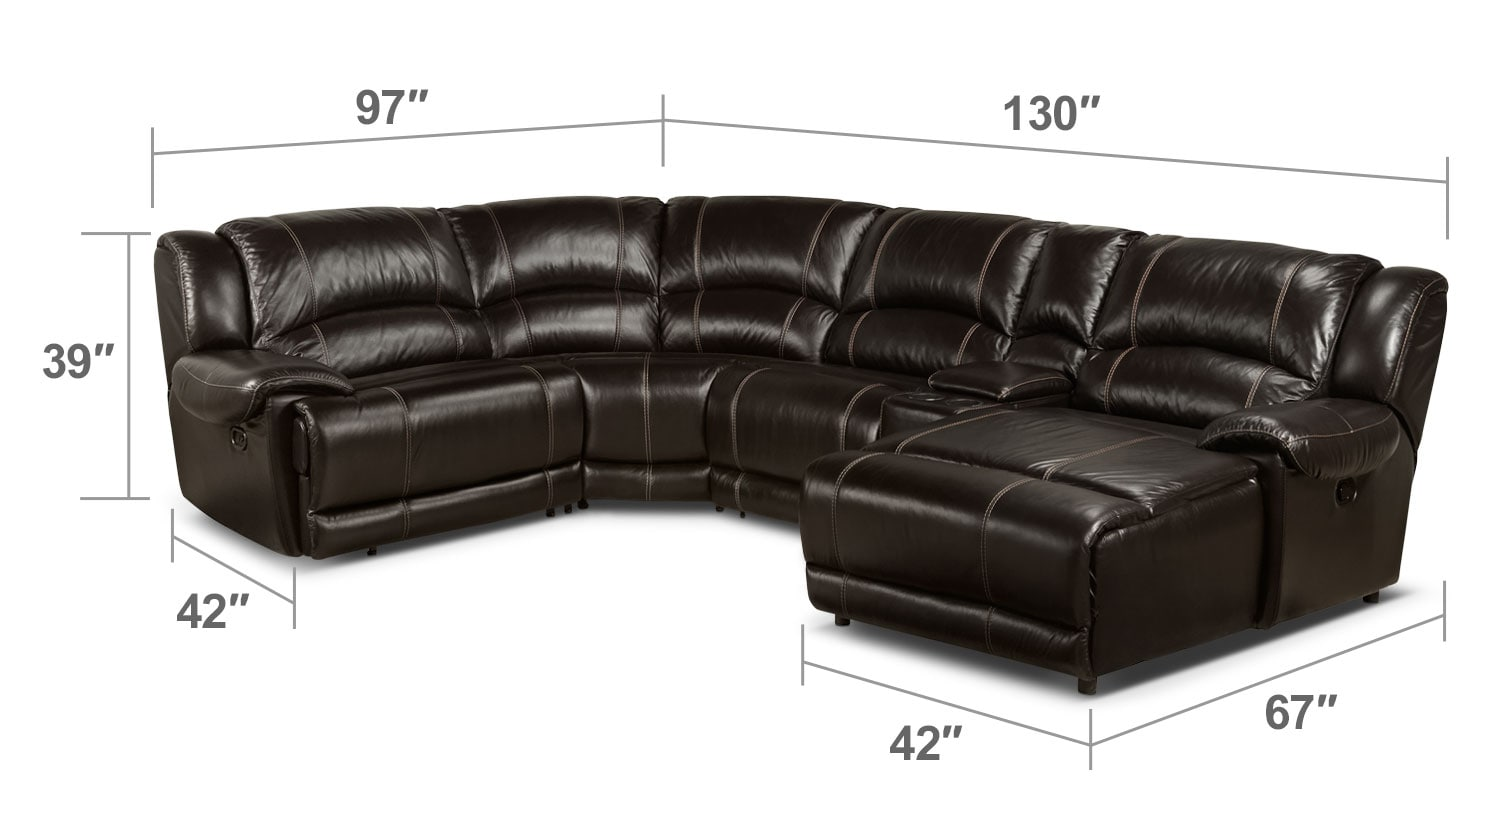 Living Room Furniture - Notredame 5-Piece Right-Facing Sectional